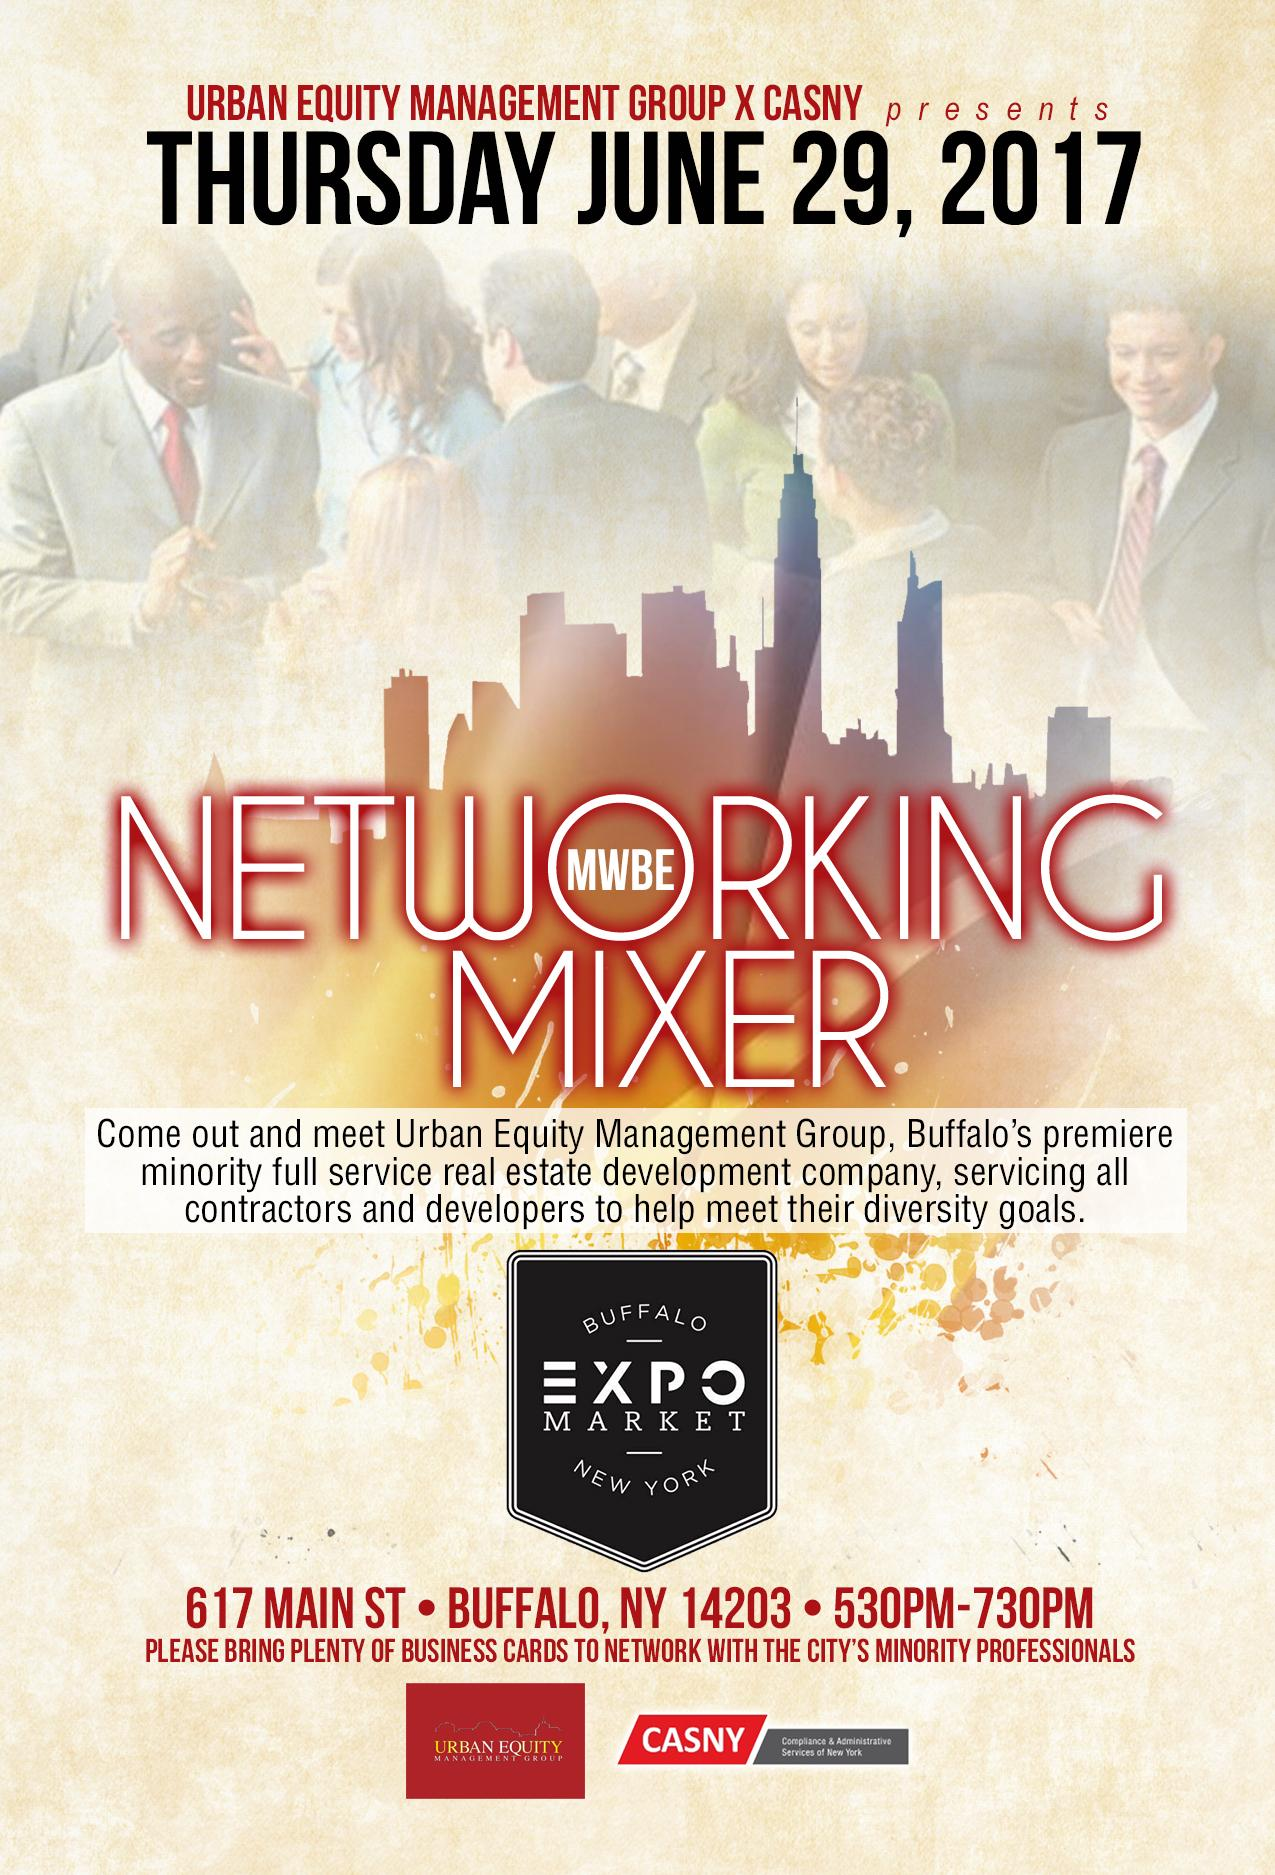 UEMG & CASNY MWBE Networking Event